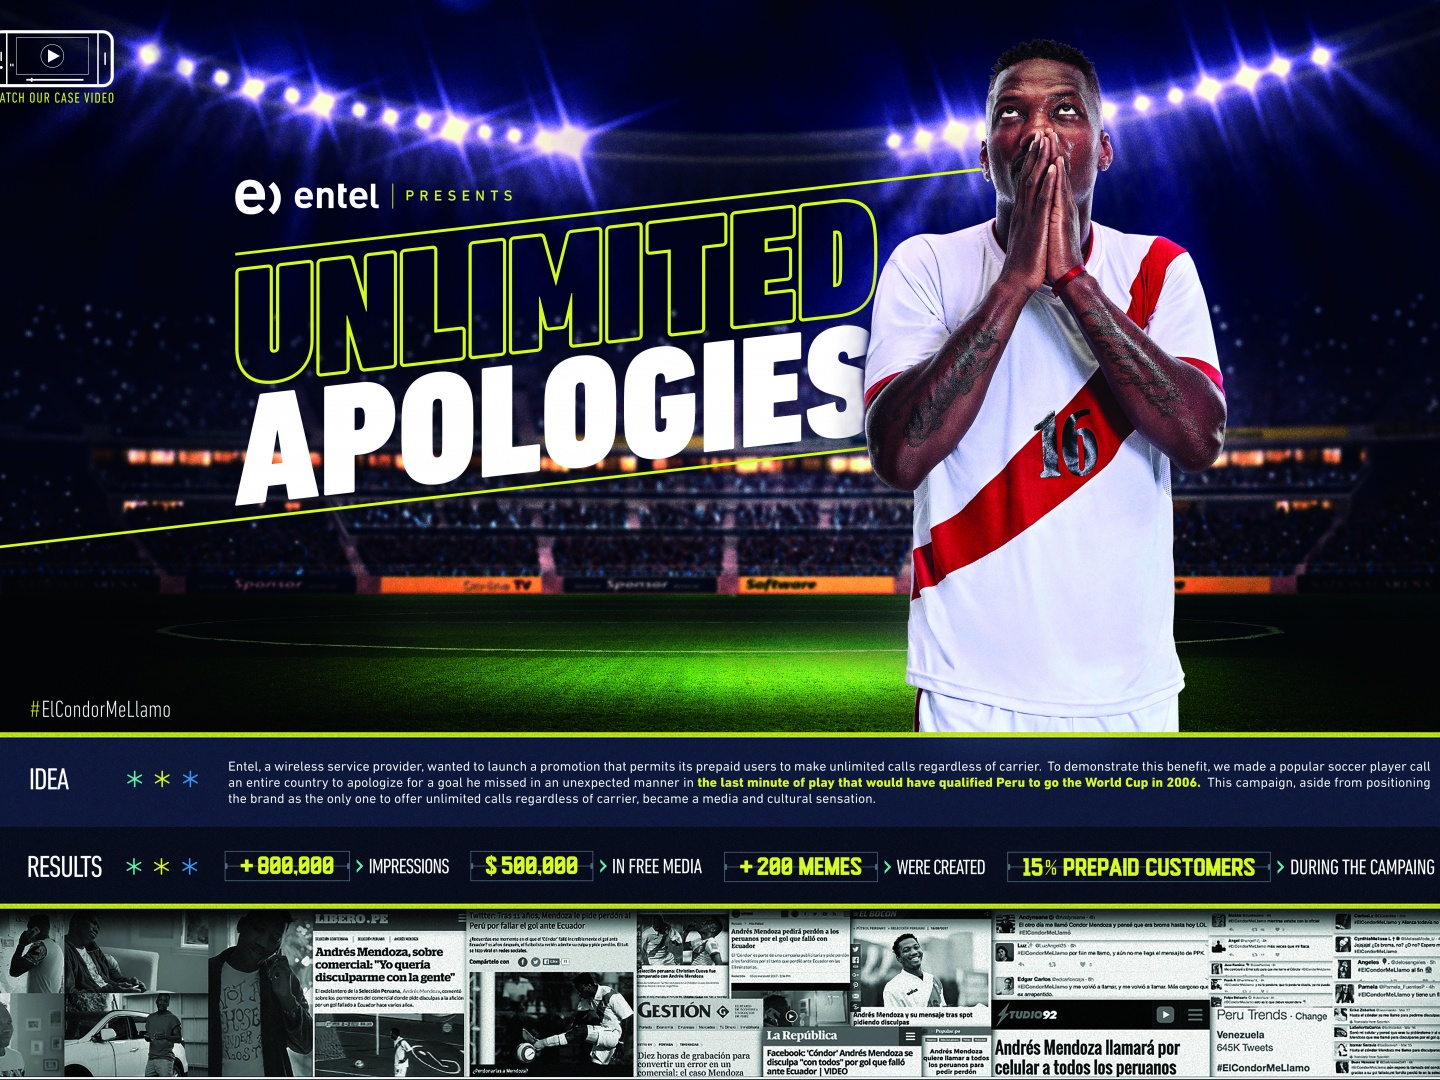 UNLIMITED APOLOGIES Thumbnail